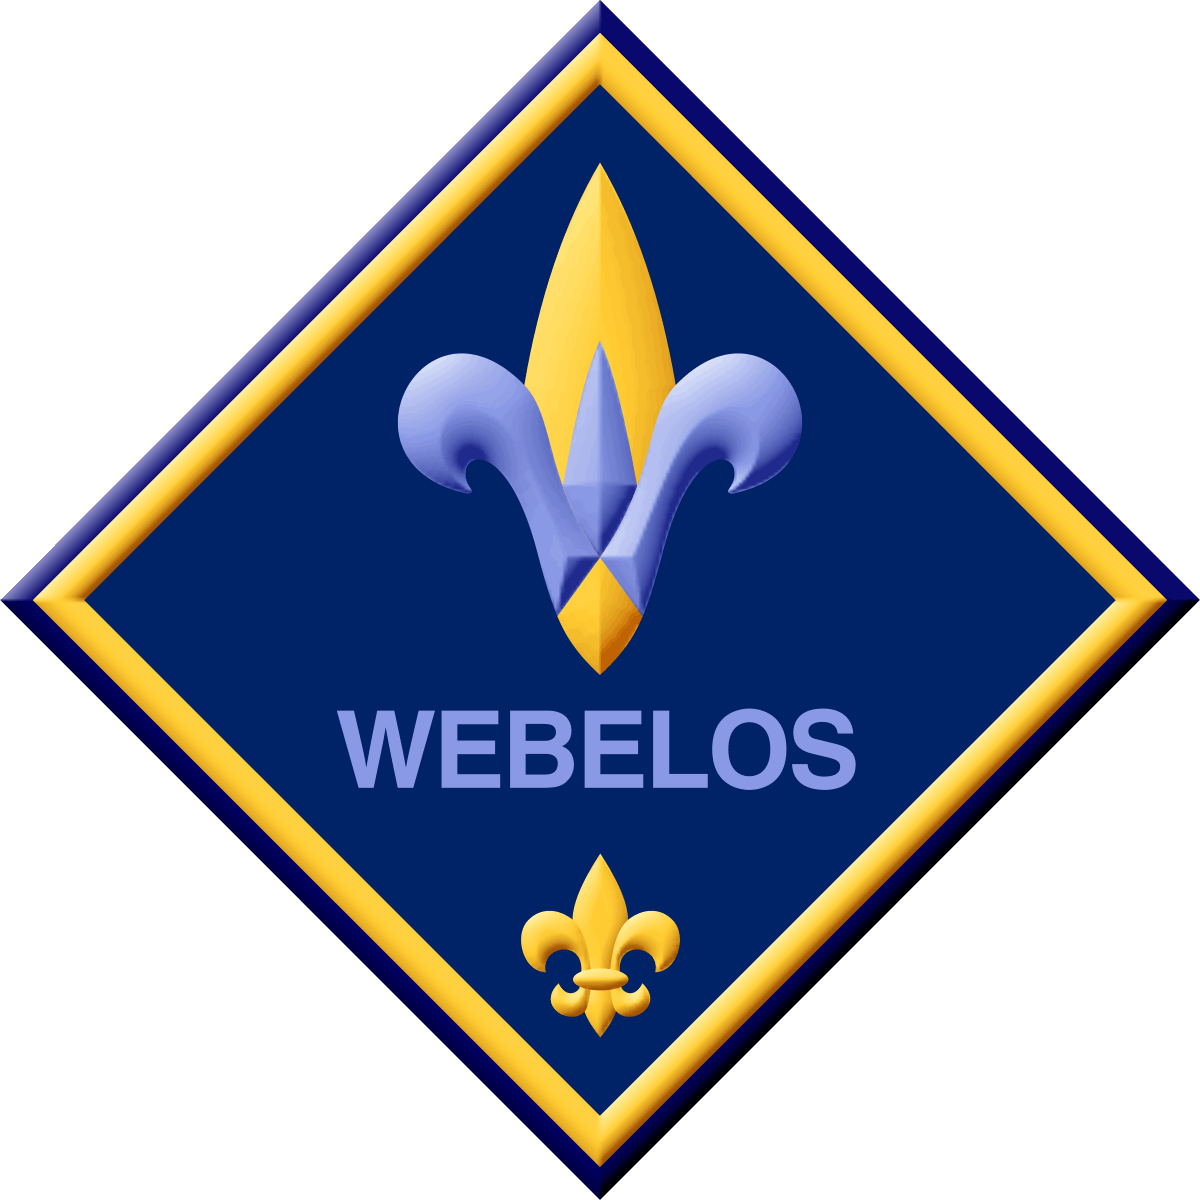 webelos_badge_blue